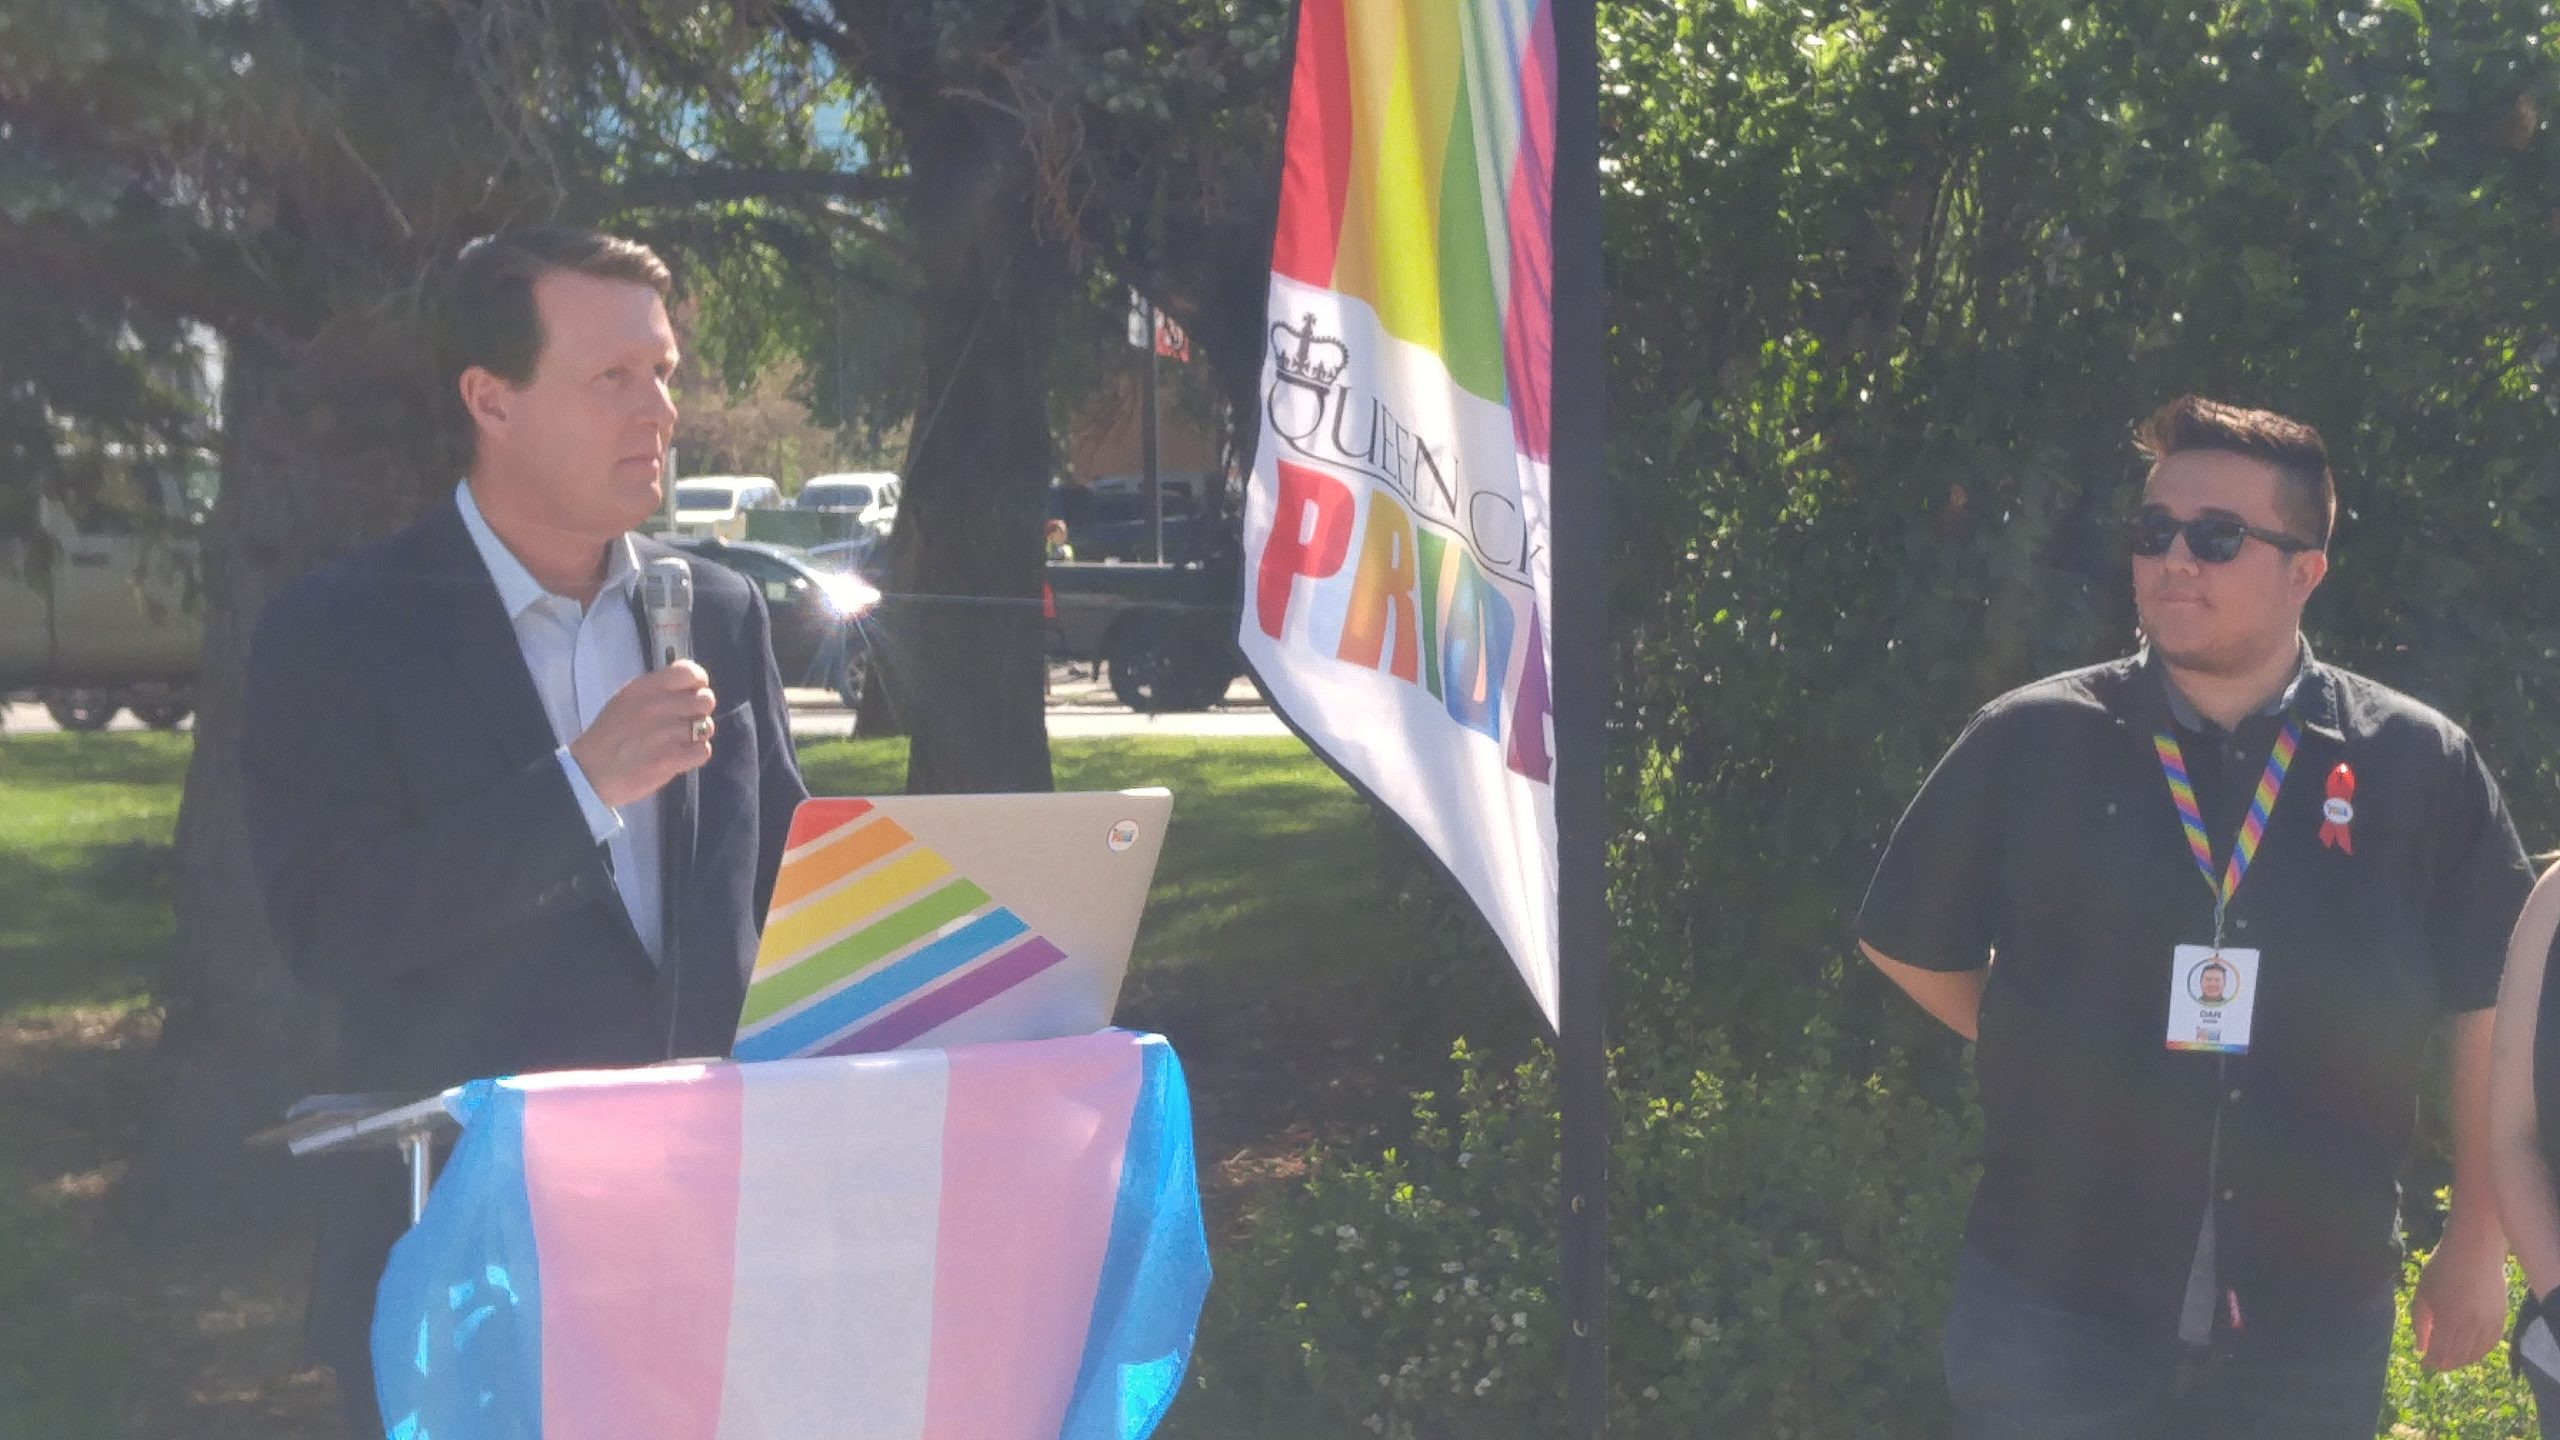 'Highest honour:' pride flag flies outside Regina city hall